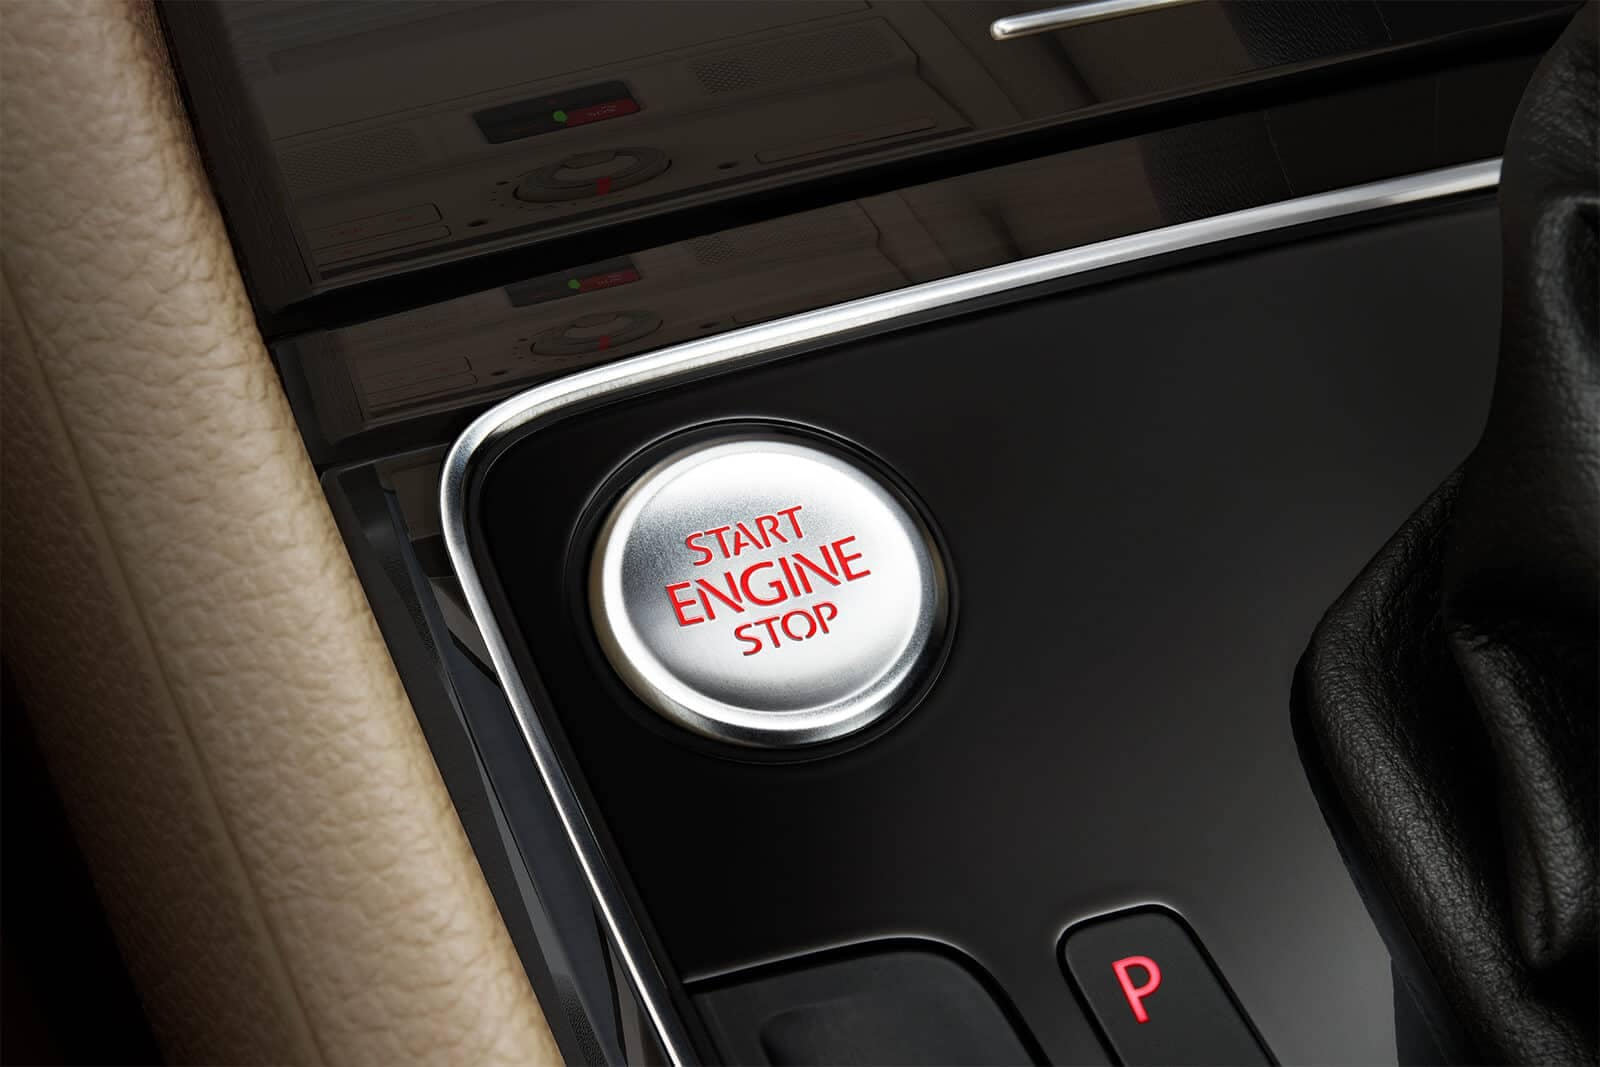 2019 Volkswagen Passat engine button